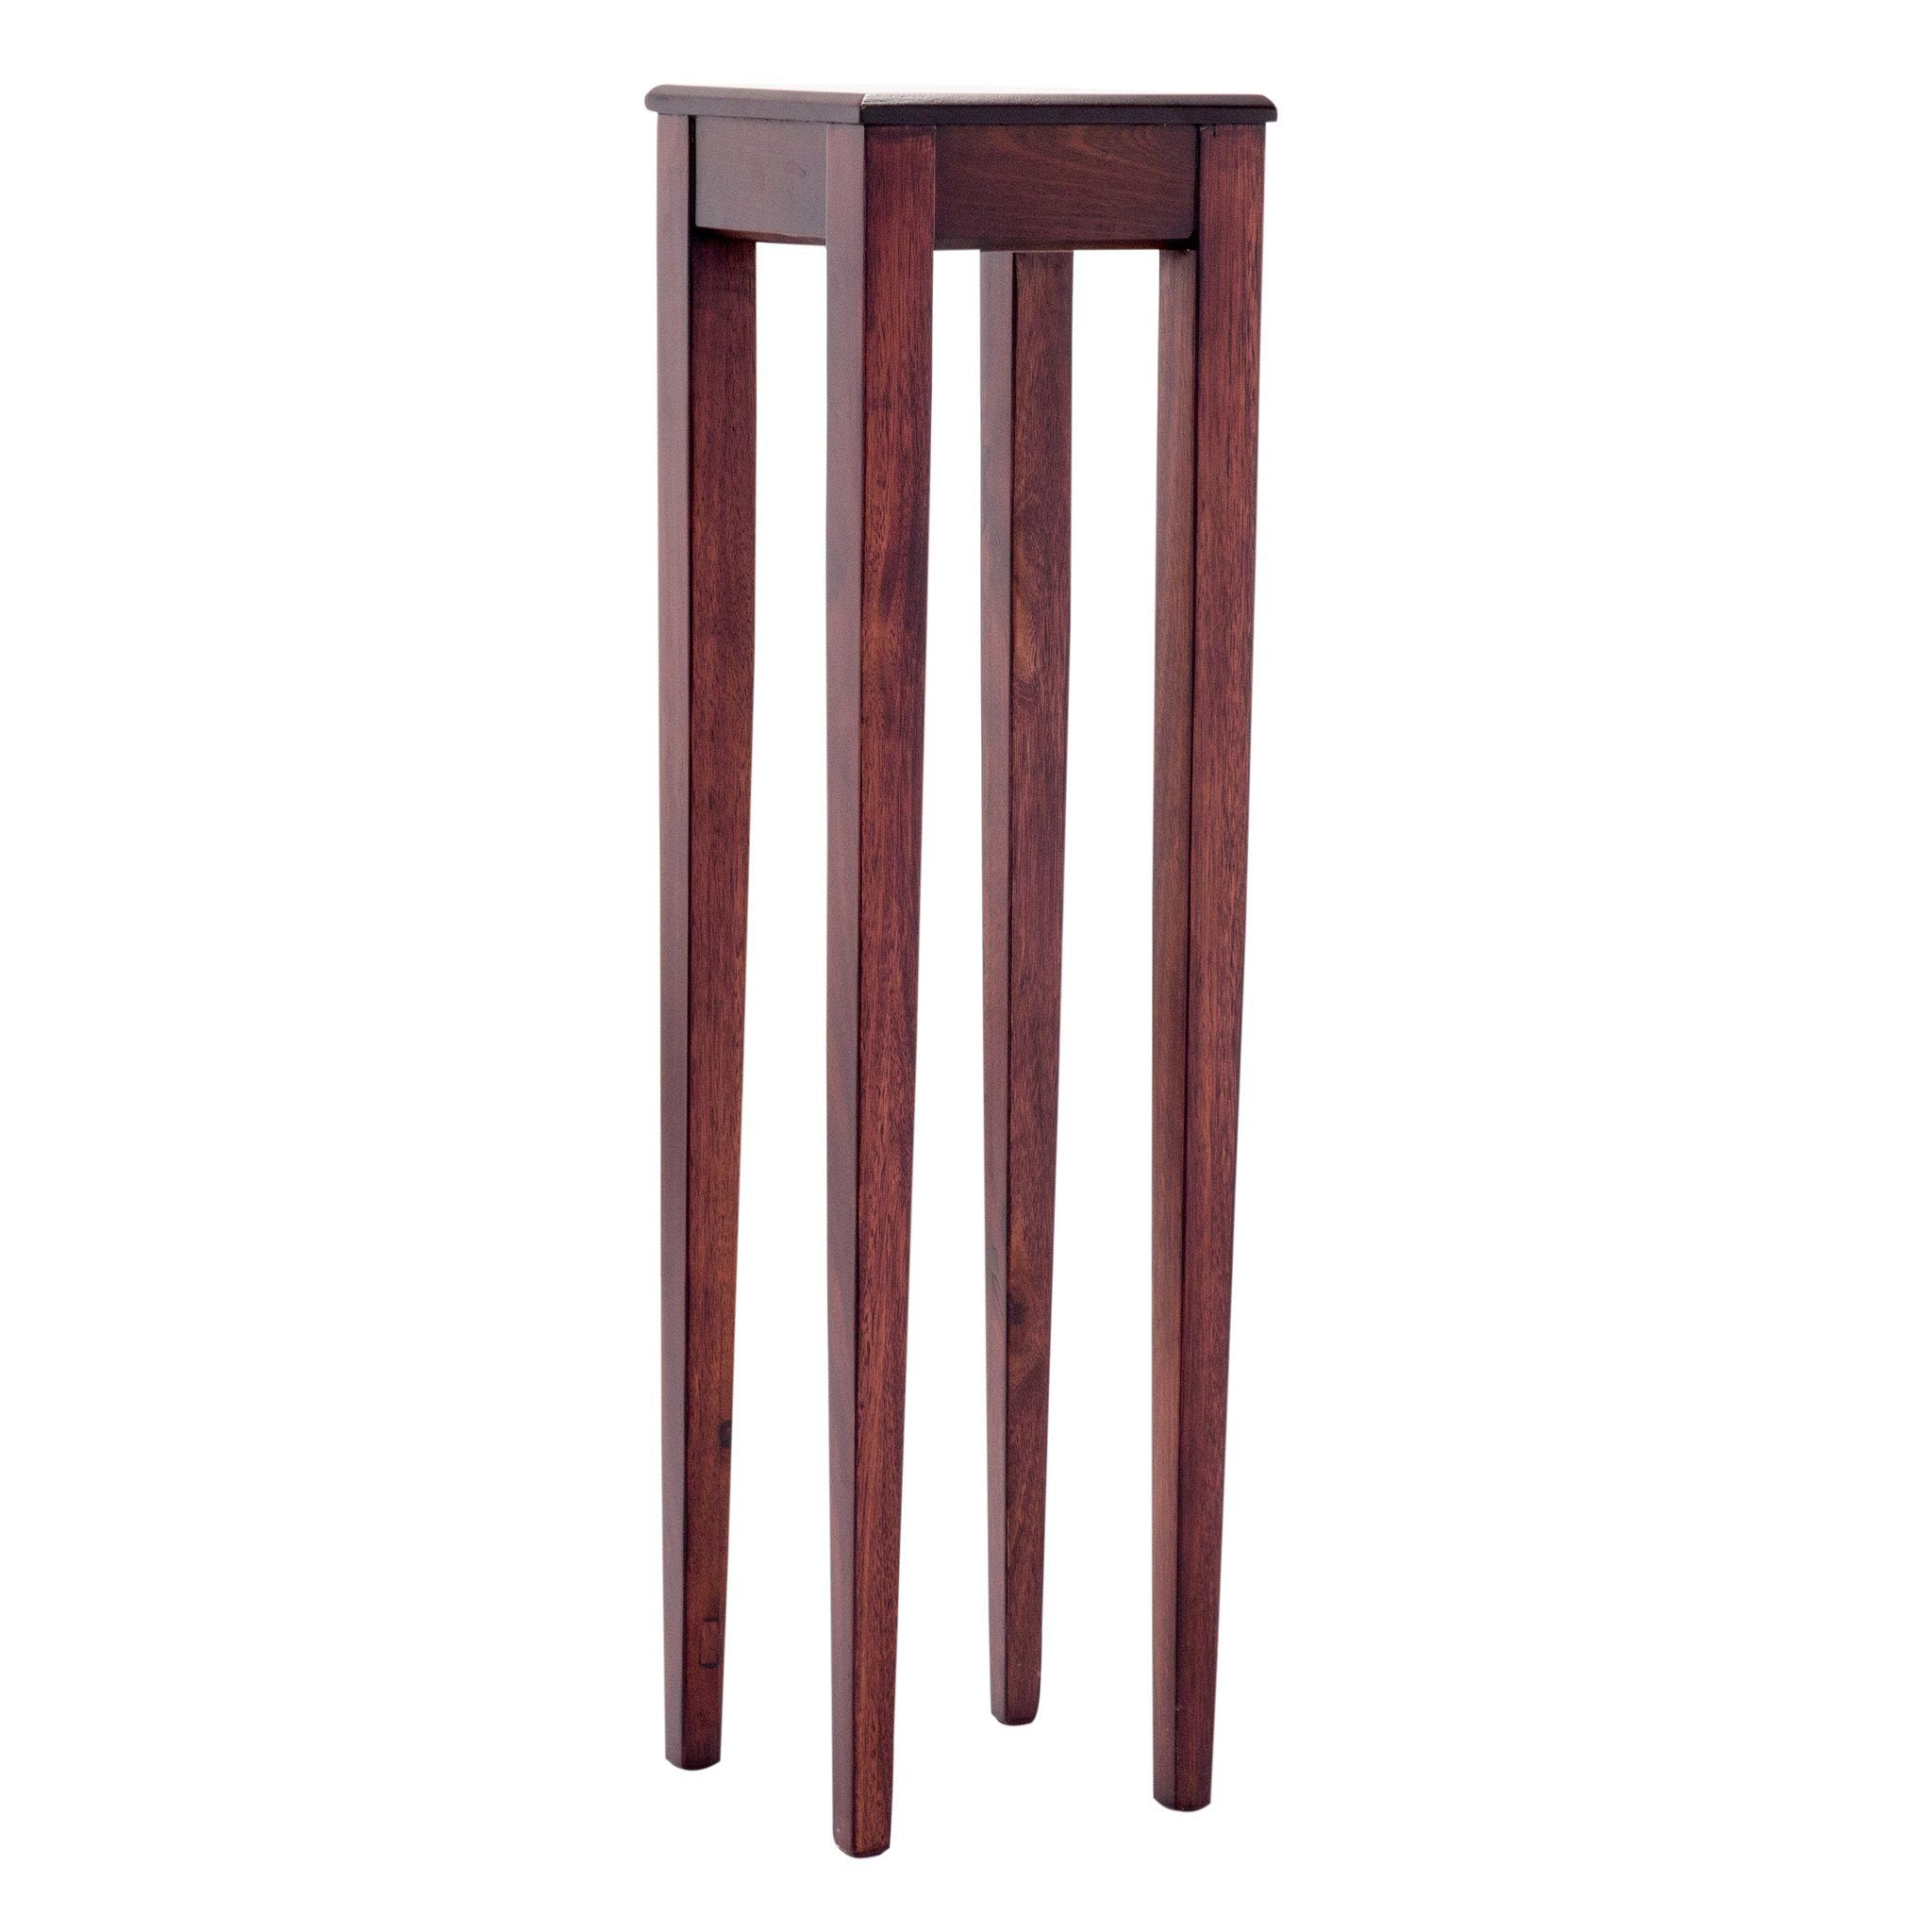 Ornament Stand | Deco | Walnut | Leather Gallery